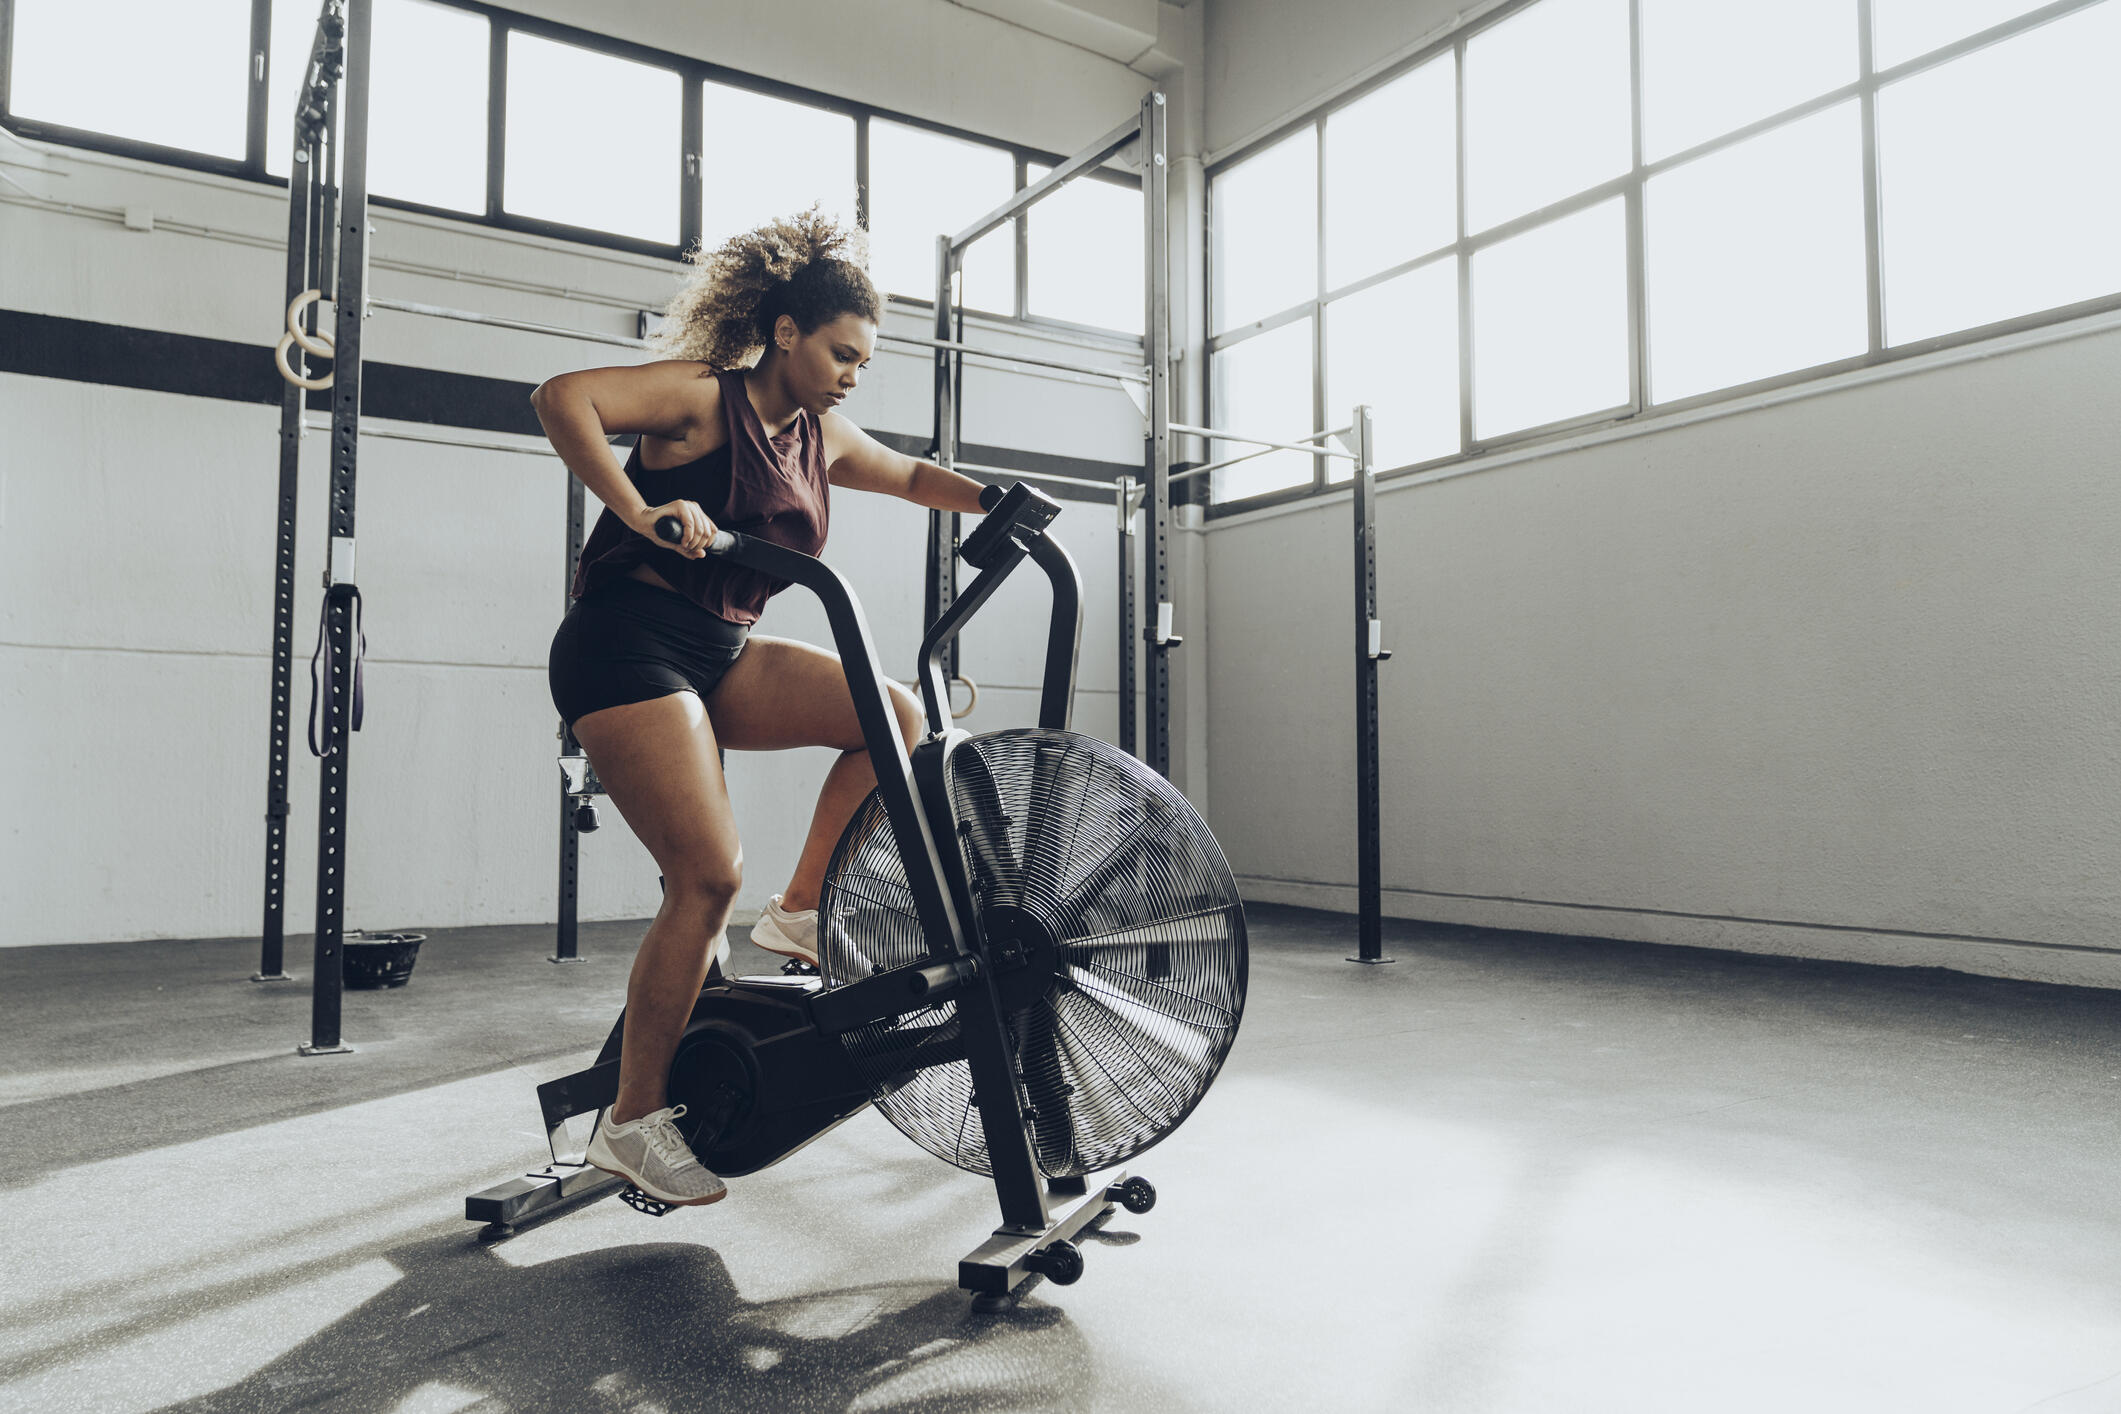 woman riding a stationary bike in a garage gym